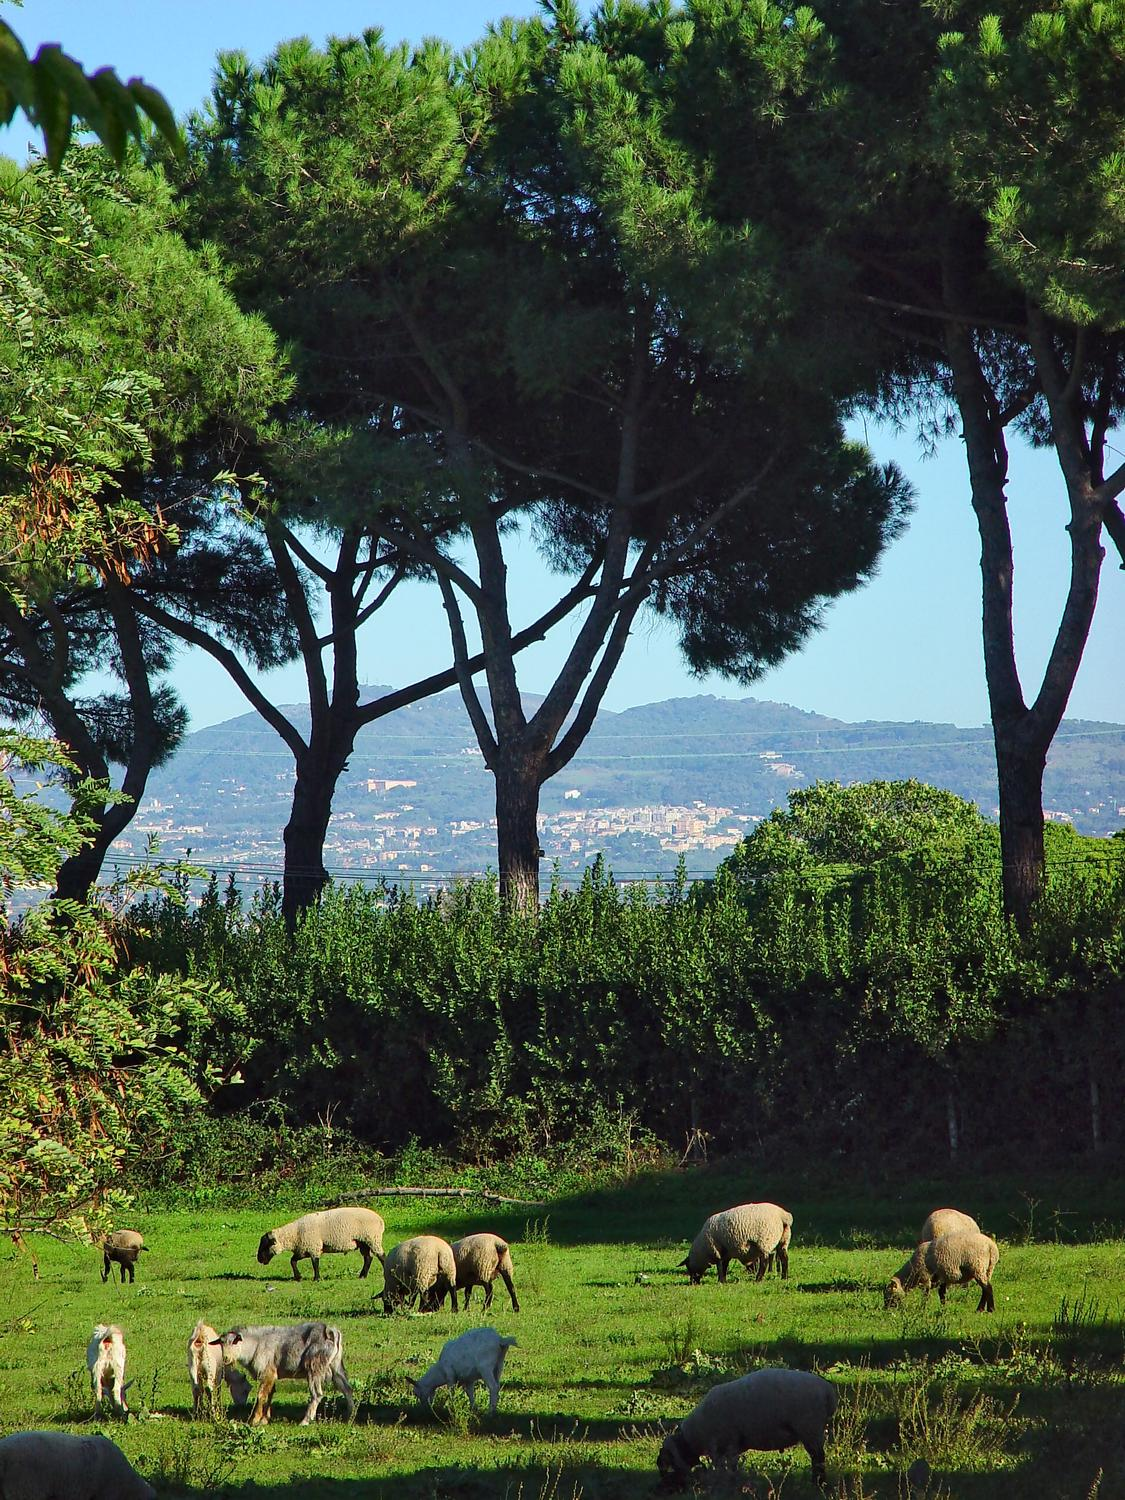 - Sheep in Rome? Yup. We saw this little farm along the Via Appia Antica. Note the characteristic umbrella shape of the stone pine trees in the background. - - Italian Stone Pine Tree - Umbrella Pine - Pinus Pinea - - - art  - photography - by Tony Karp